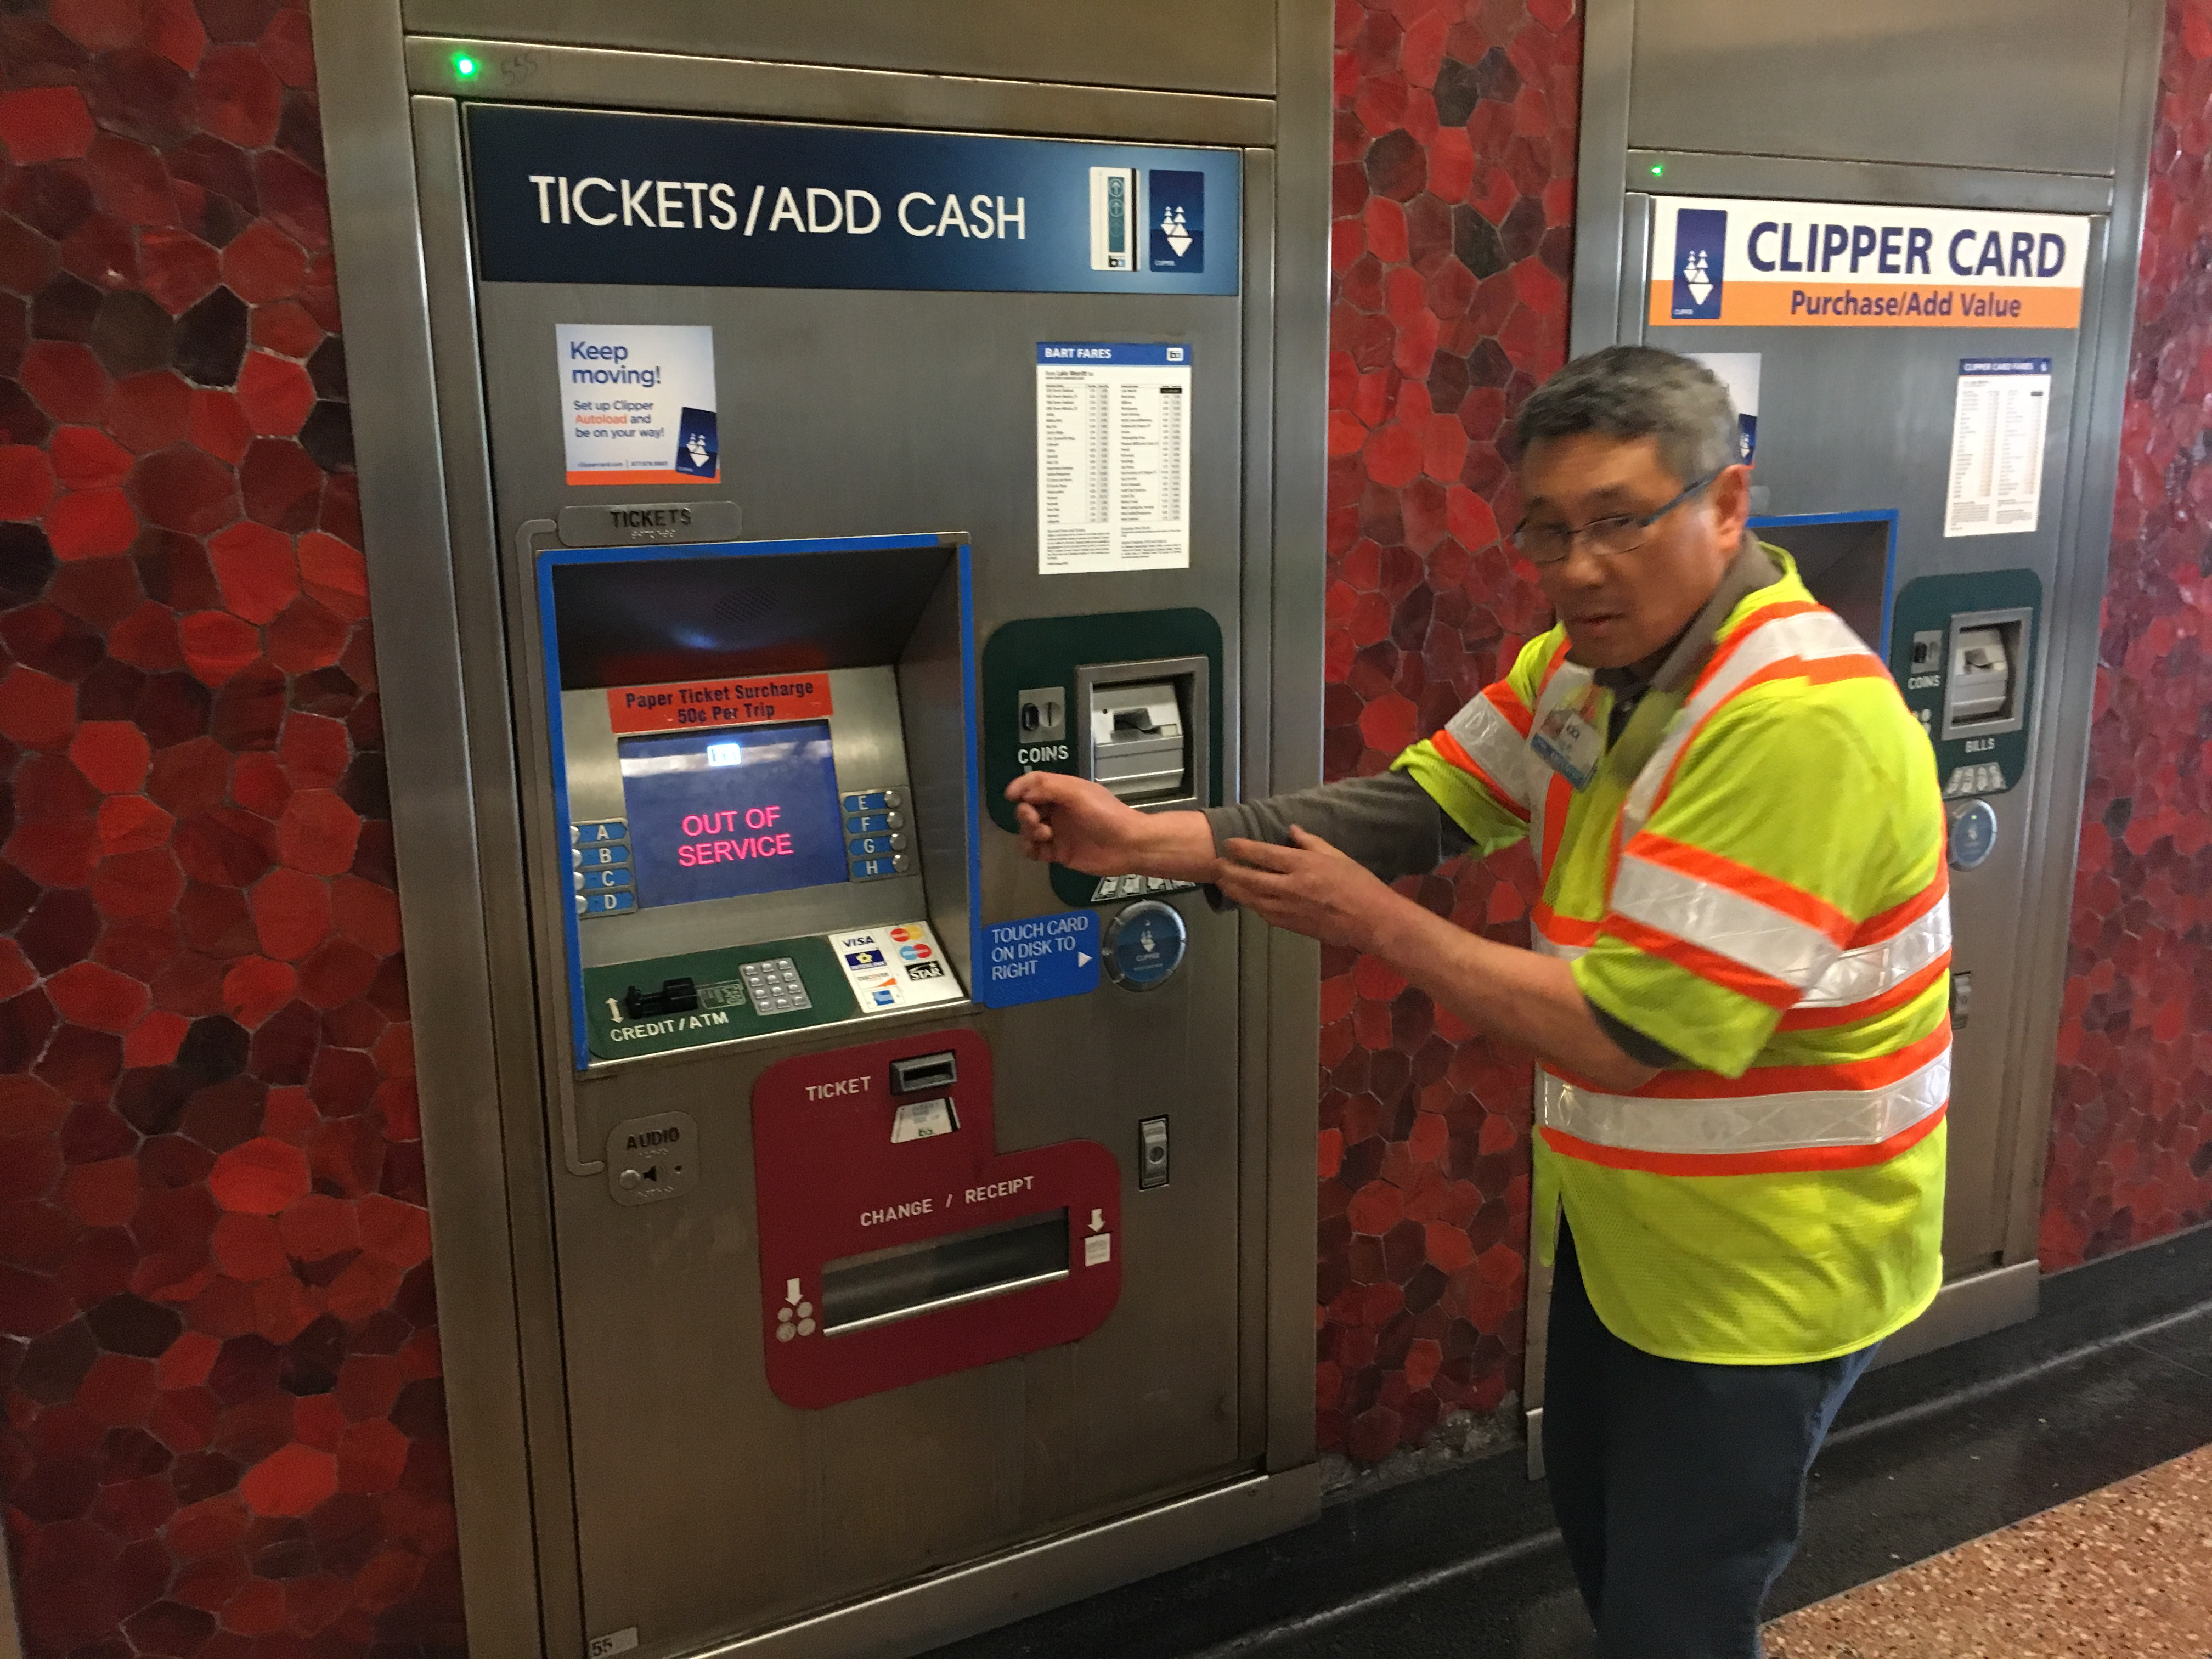 There's more to Ticket Vending Machines and fare gates than